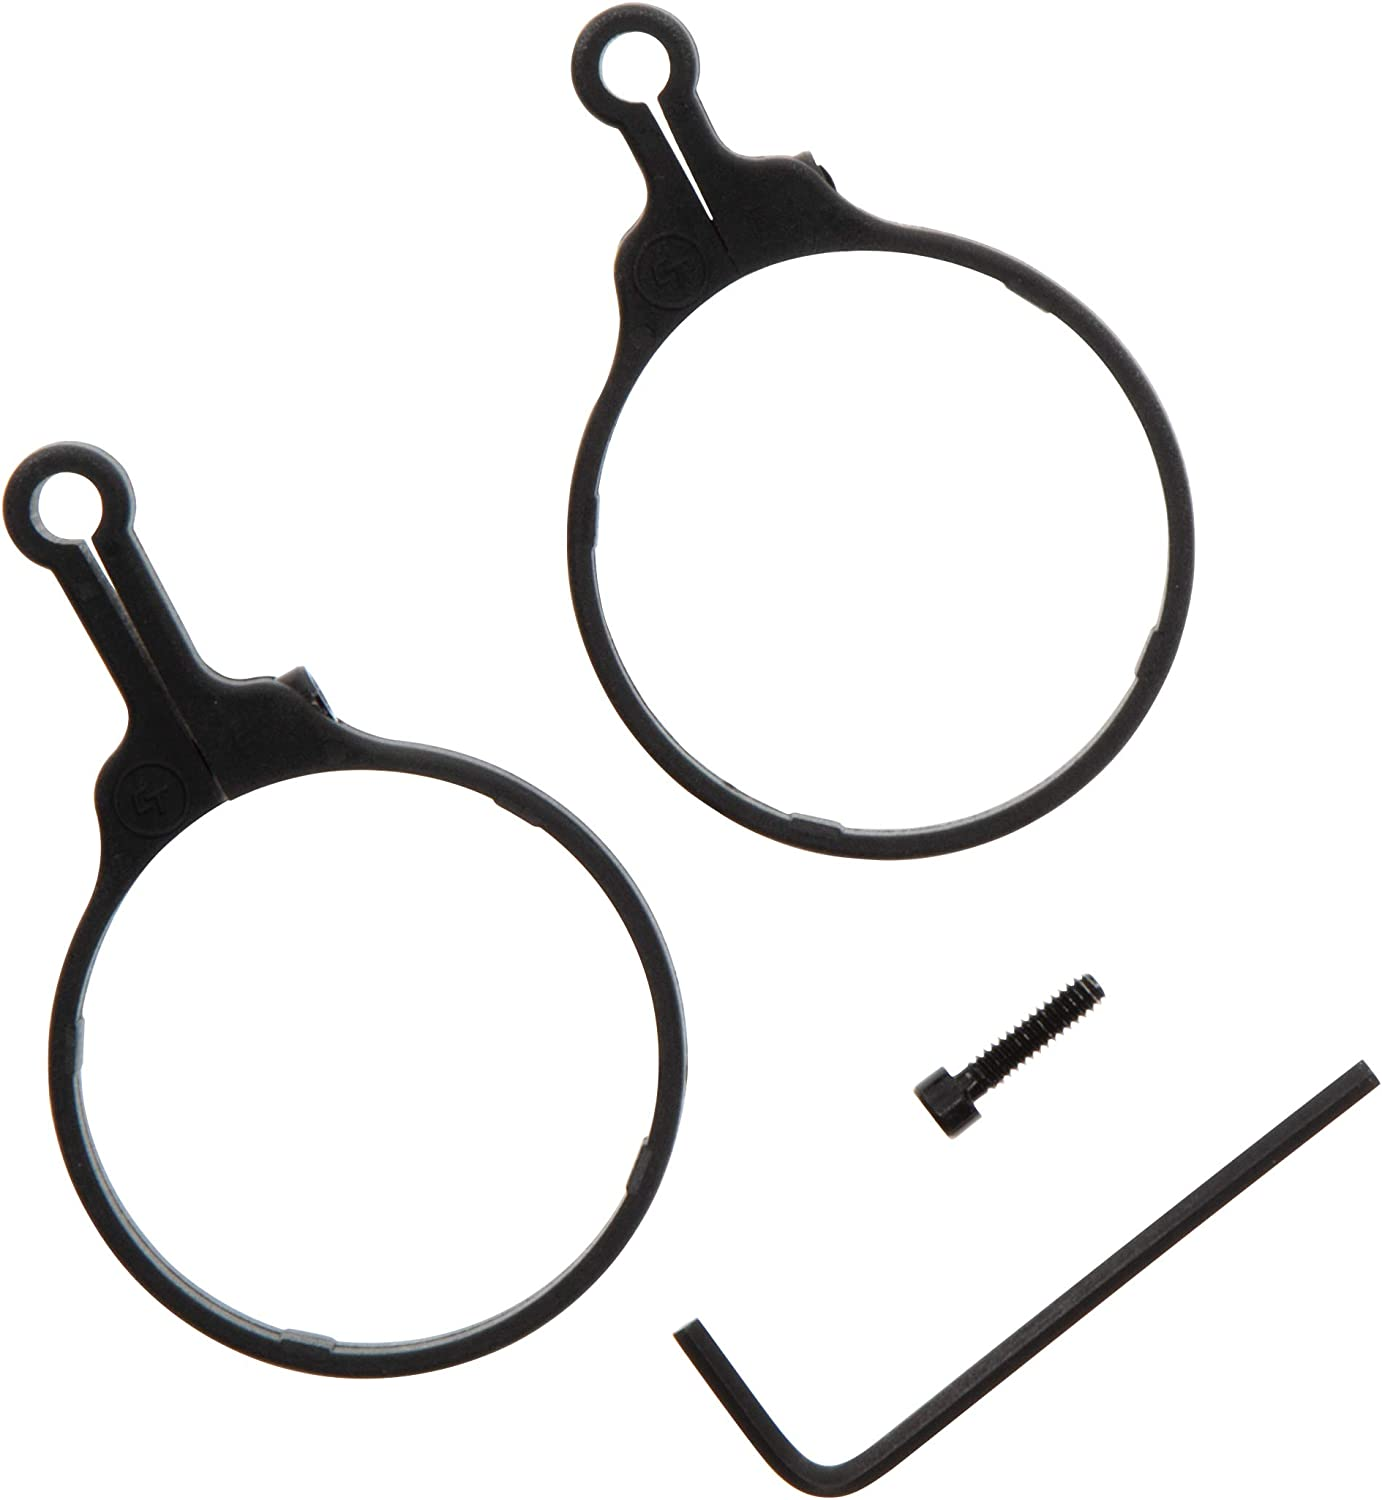 High Low Options and Solid Scope Fit for 3 Gun Crimson Trace Throw Levers with One Piece Design Shooting and Competition 2 Pack